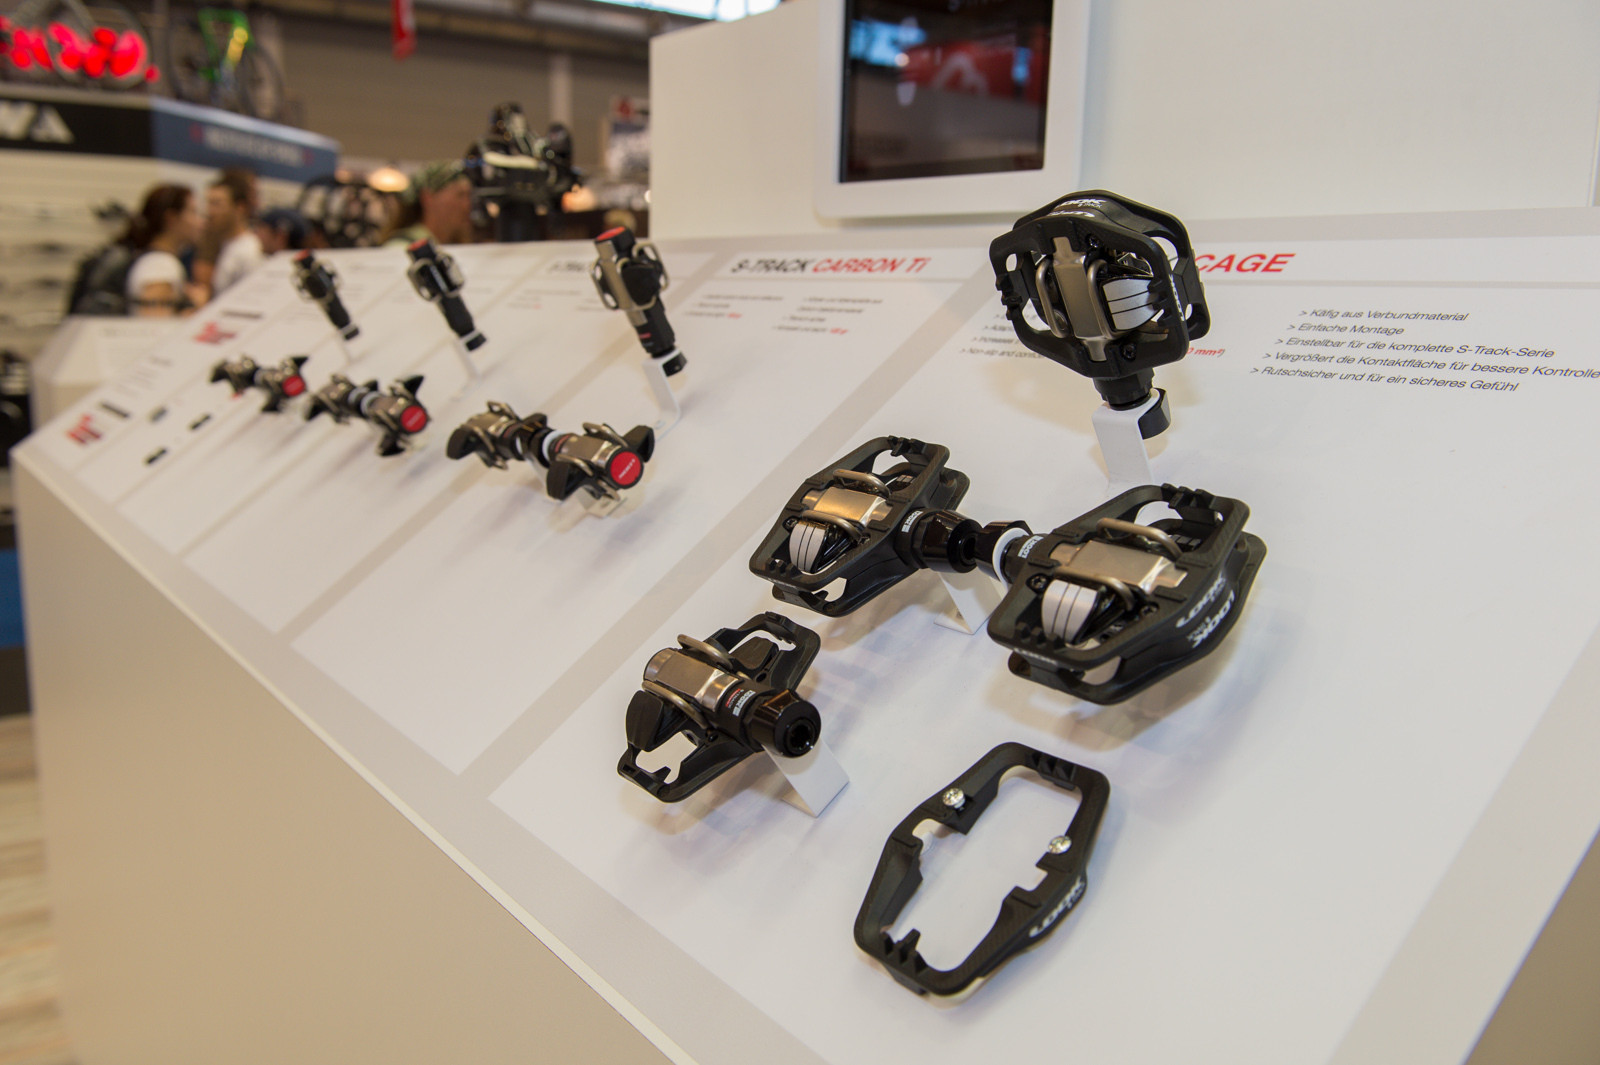 Look S-Cage Pedals - 2014 Mountain Bike Components at Eurobike 2013 - Mountain Biking Pictures - Vital MTB